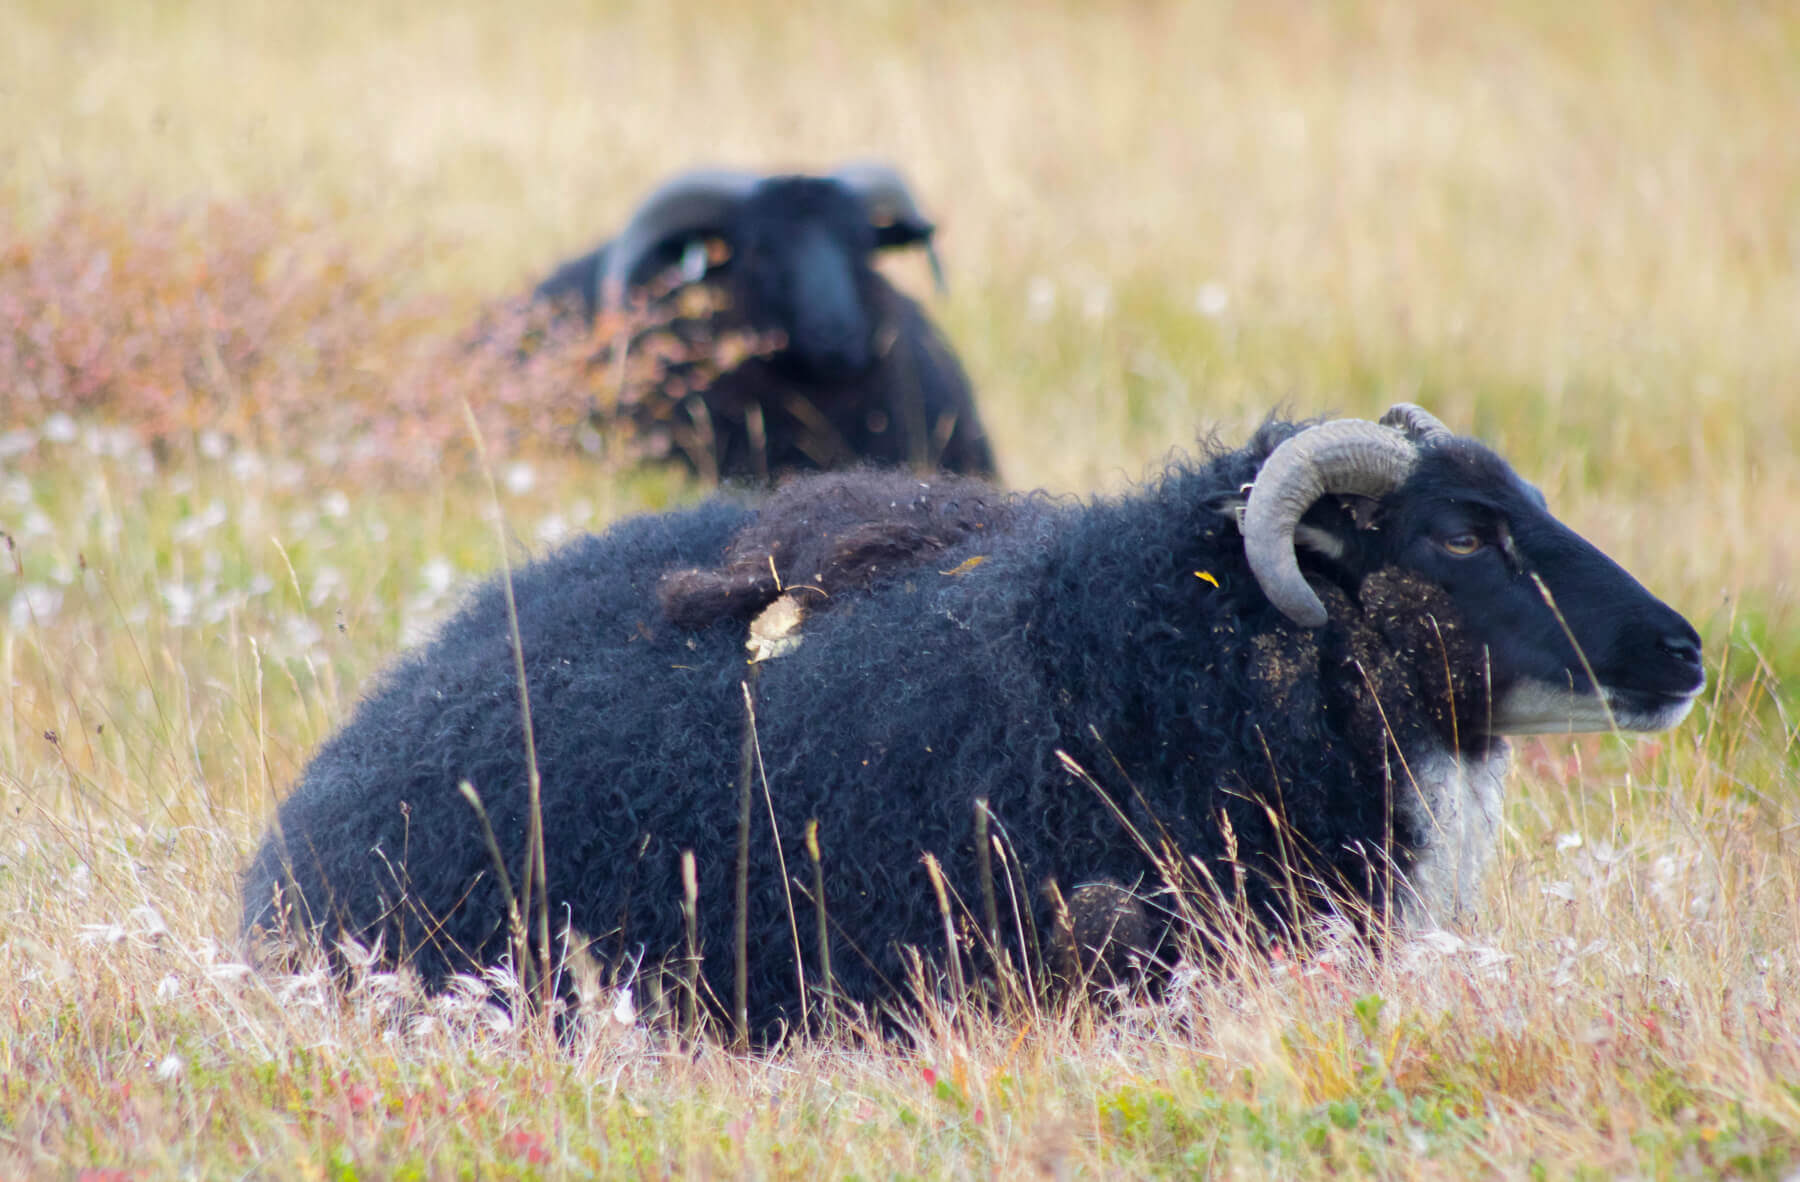 two black sheep sitting in the grass